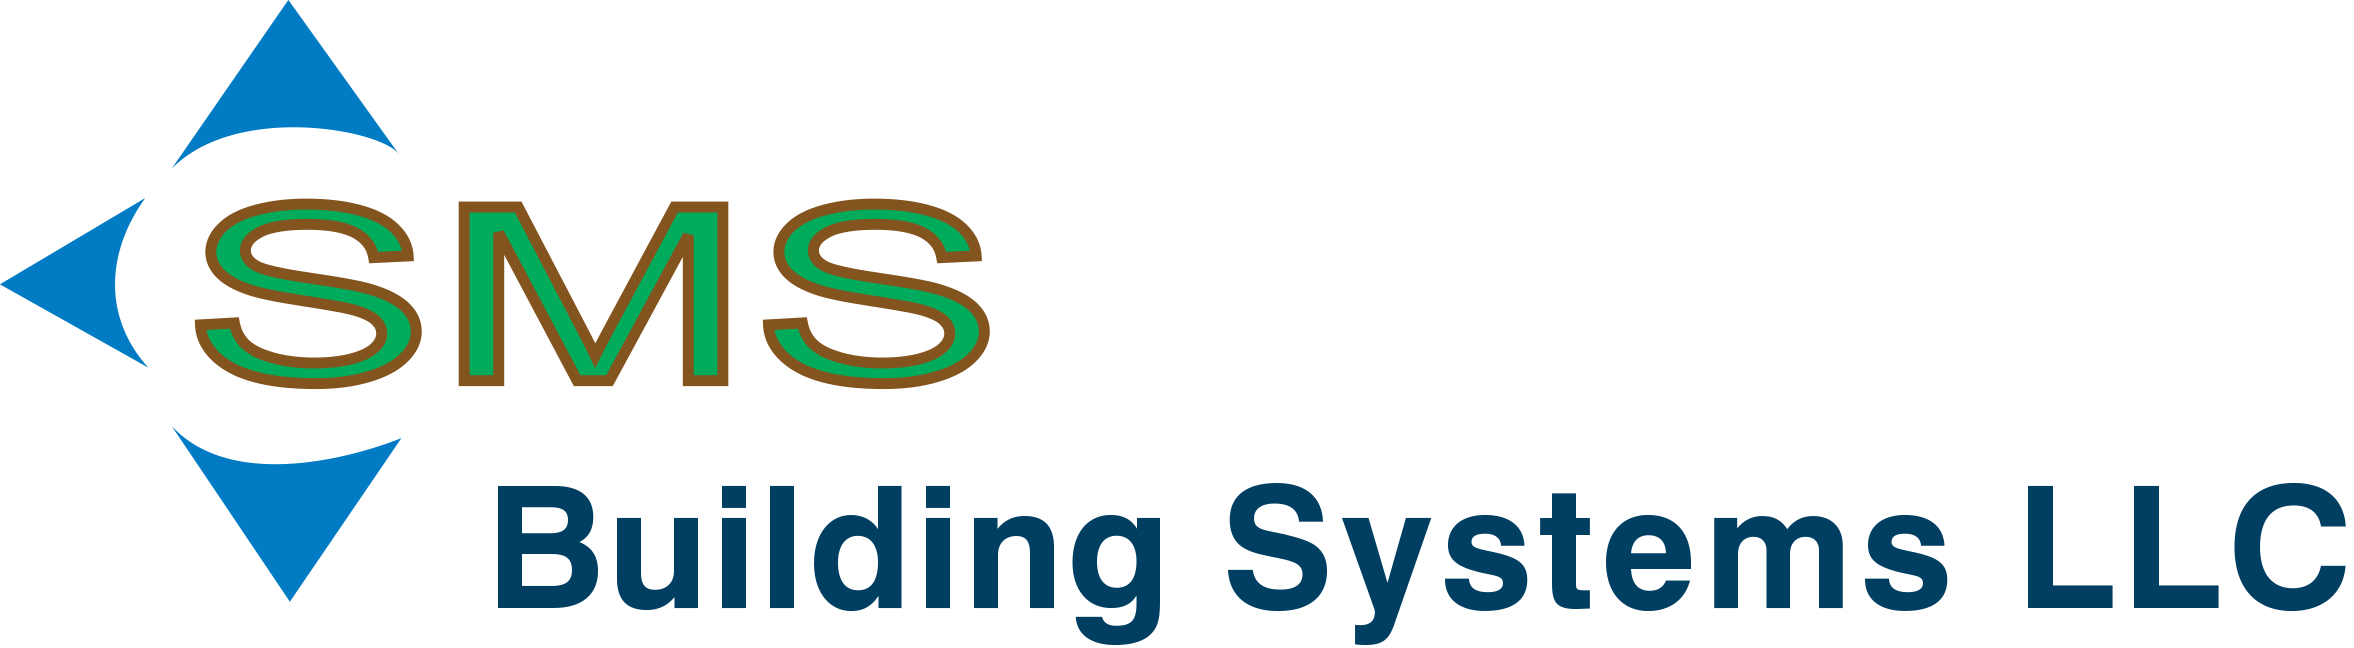 SMS Building Systems